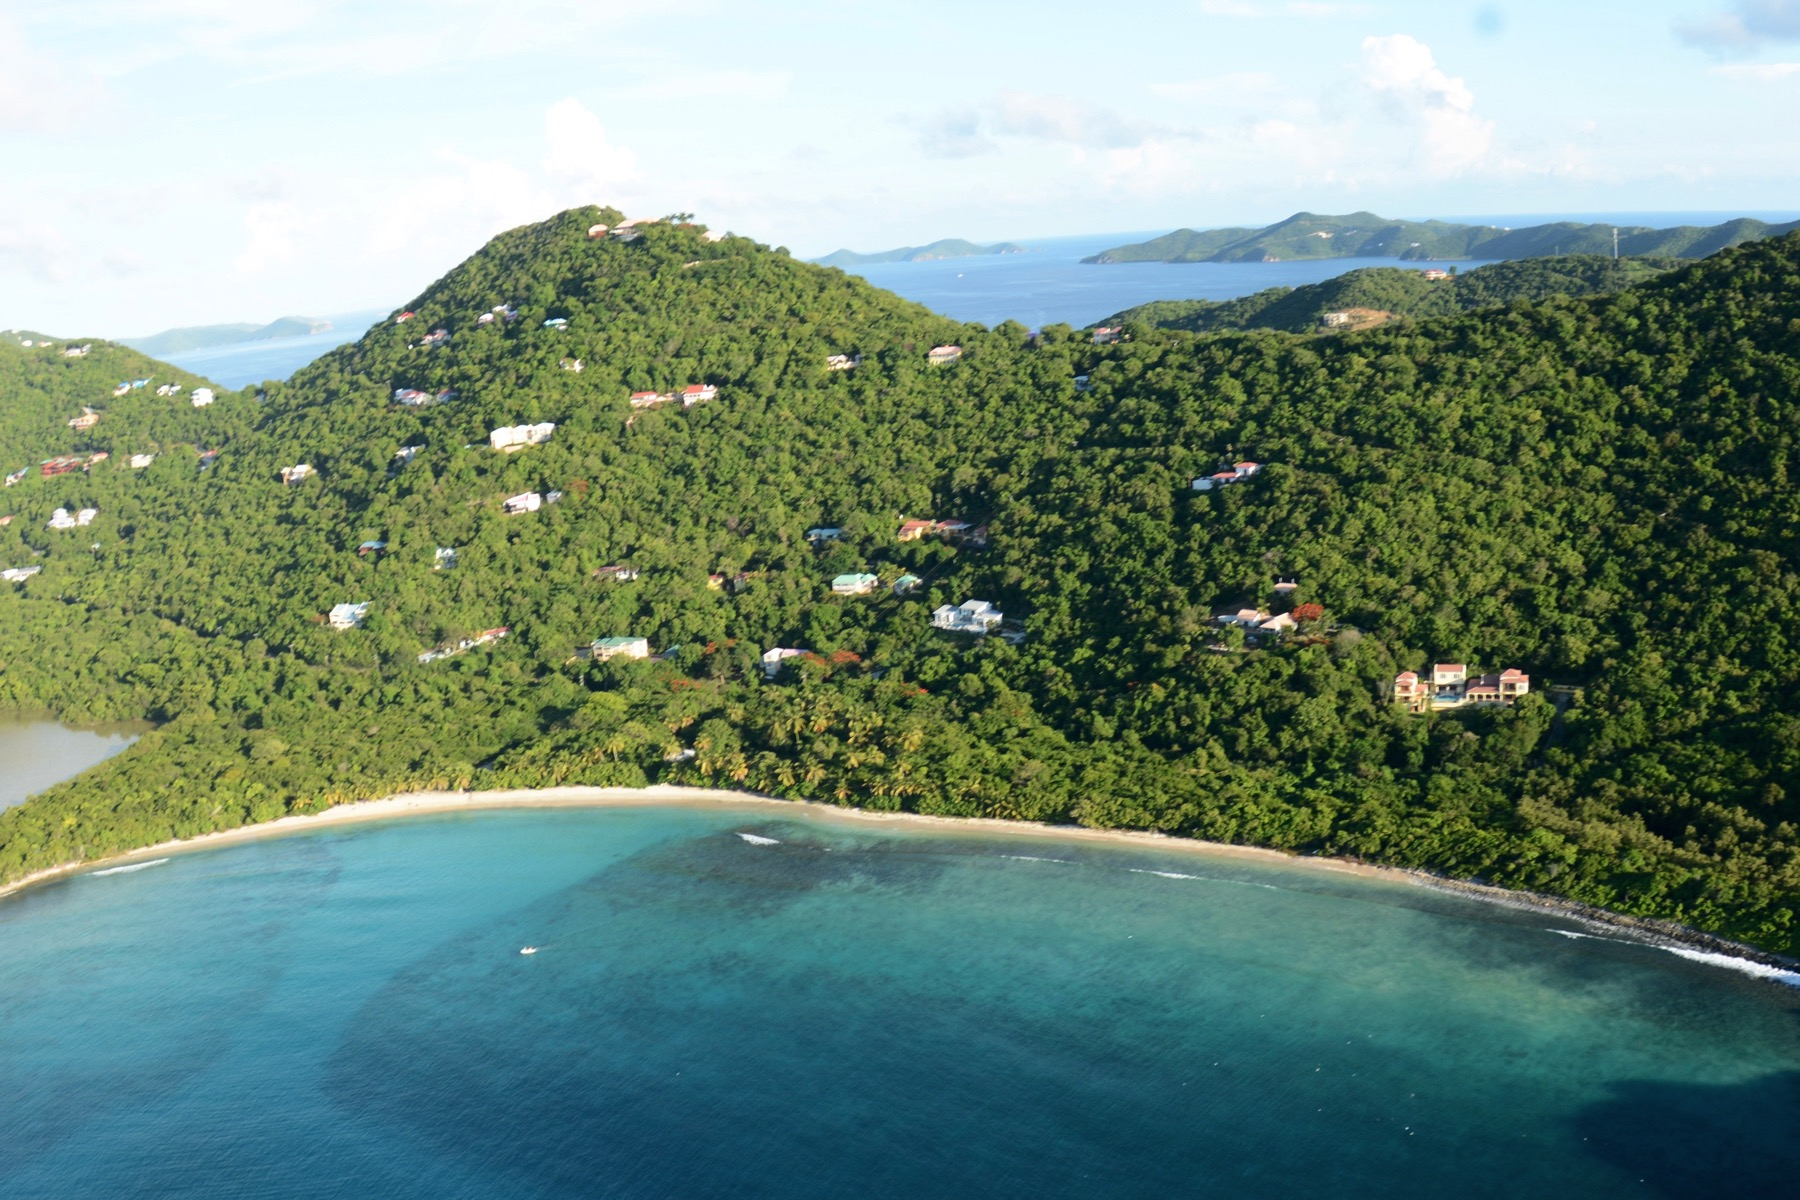 أراضي للـ Sale في Belmont Land 128 Belmont, Tortola British Virgin Islands